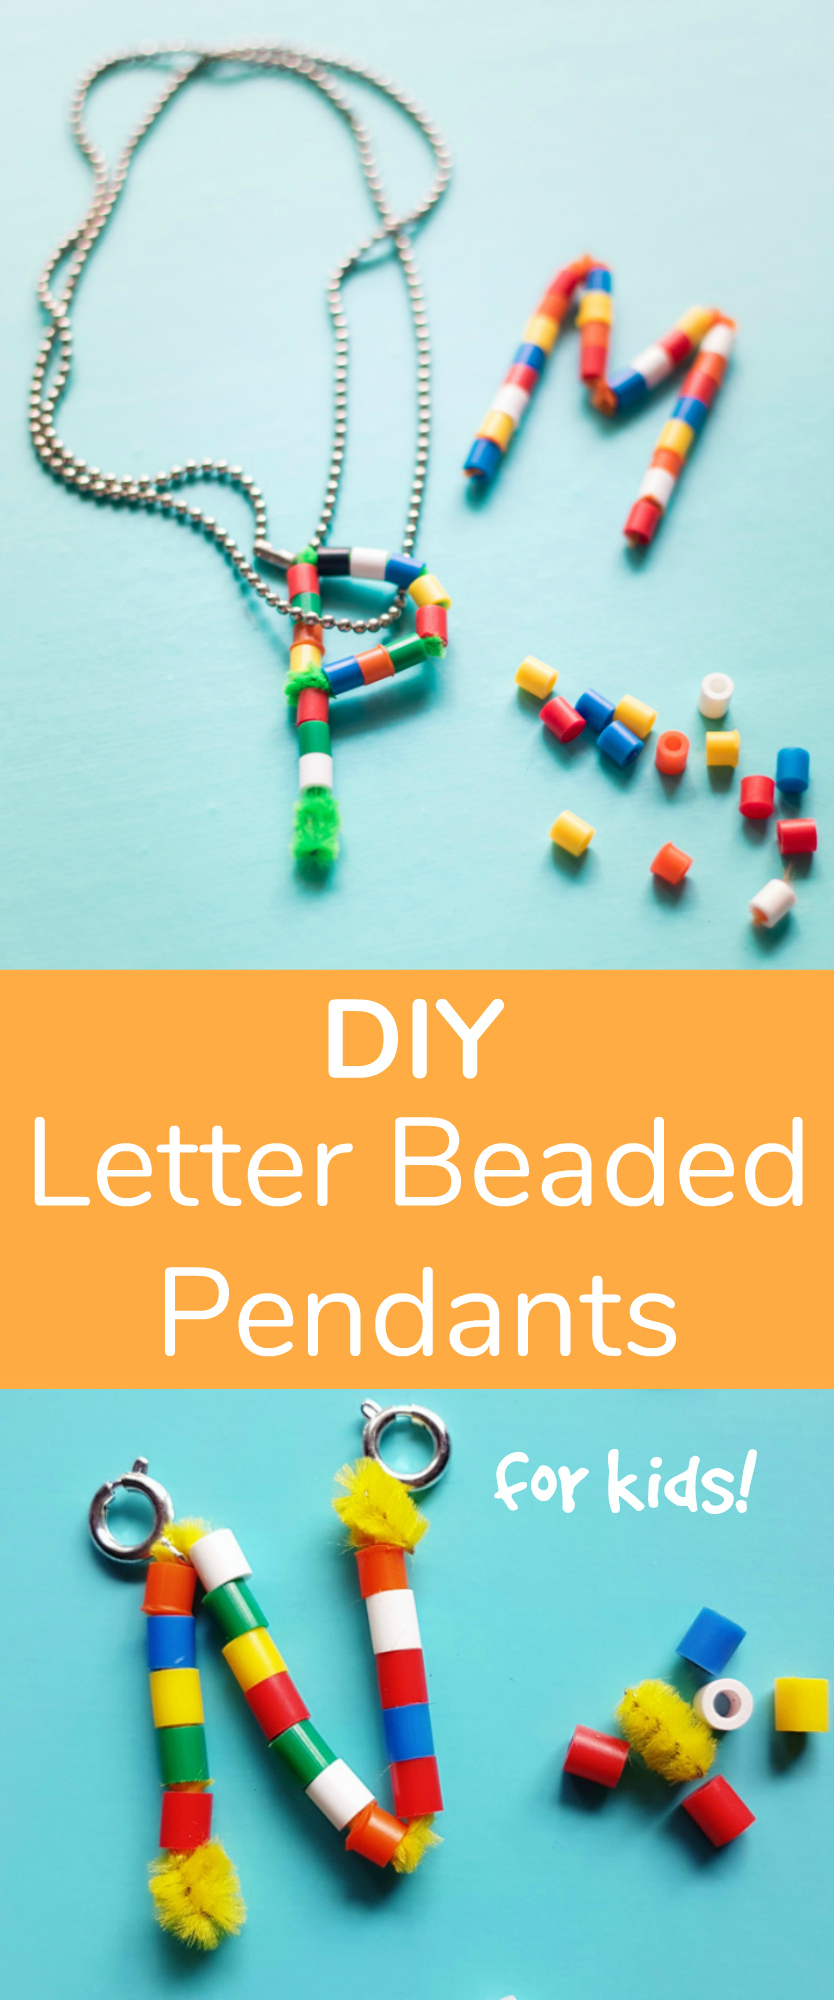 DIY Letter Beaded Pendants for Kids